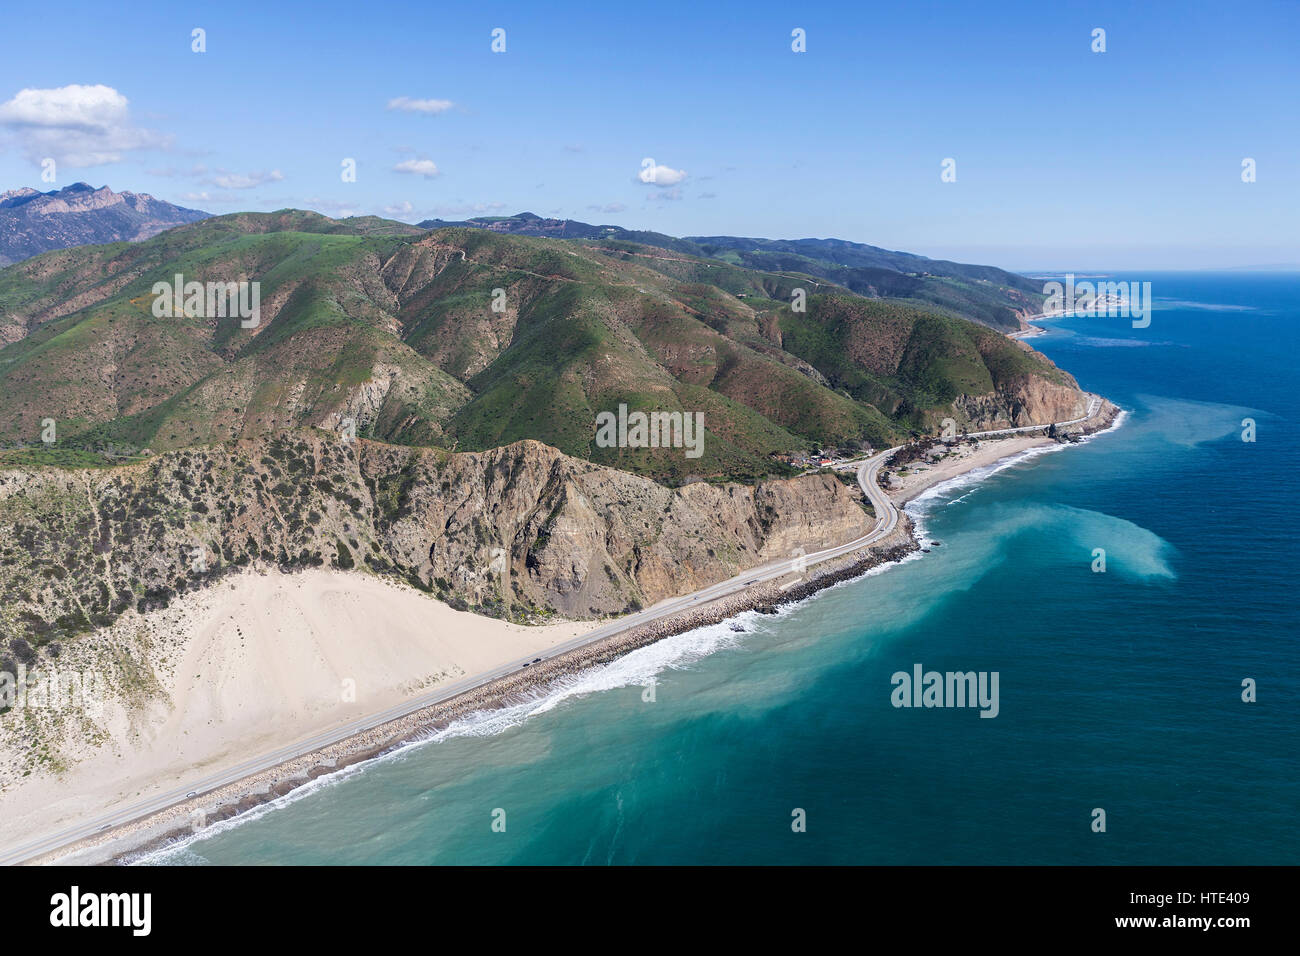 Aerial view of coastal sand dune and Pacific Coast Highway north of Malibu in Southern California. - Stock Image